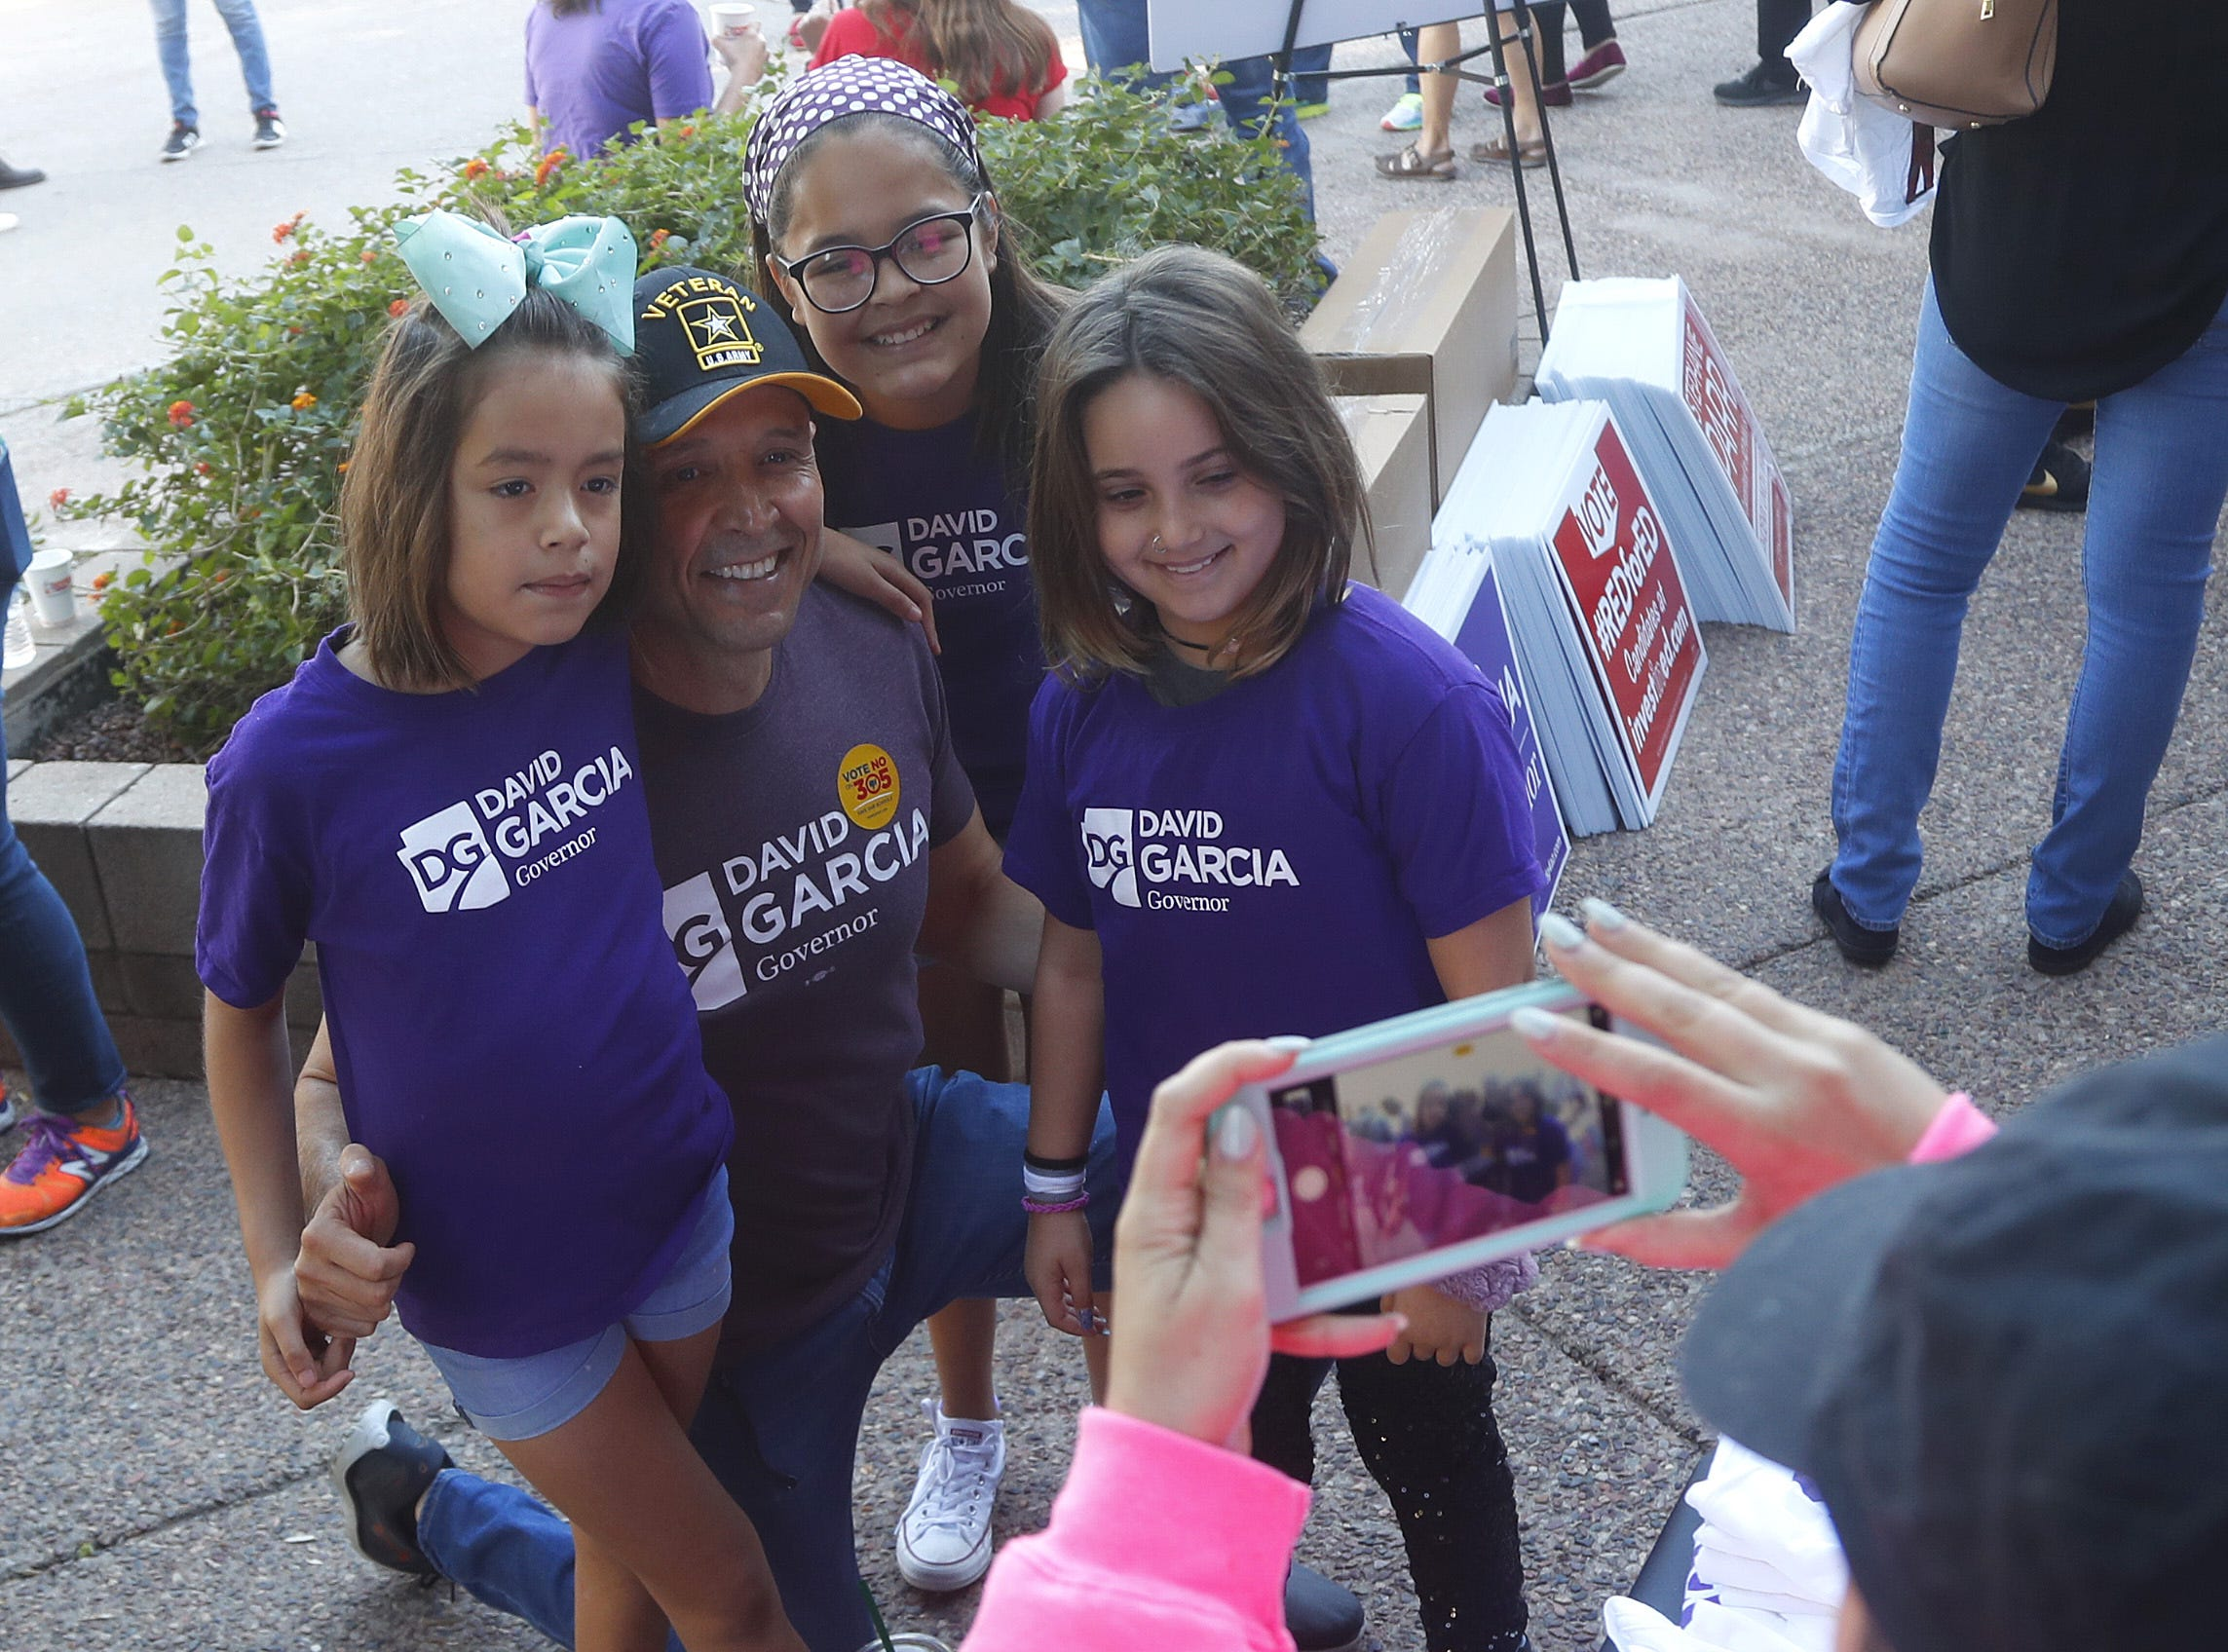 Ariel Rosen (in pink) takes a picture of her daughter Emunah, 9 (on right) with David Garcia and his two daughters Olivia (L) and Lola (center) outside the Arizona Education Association offices in Phoenix on November 3, 2018.